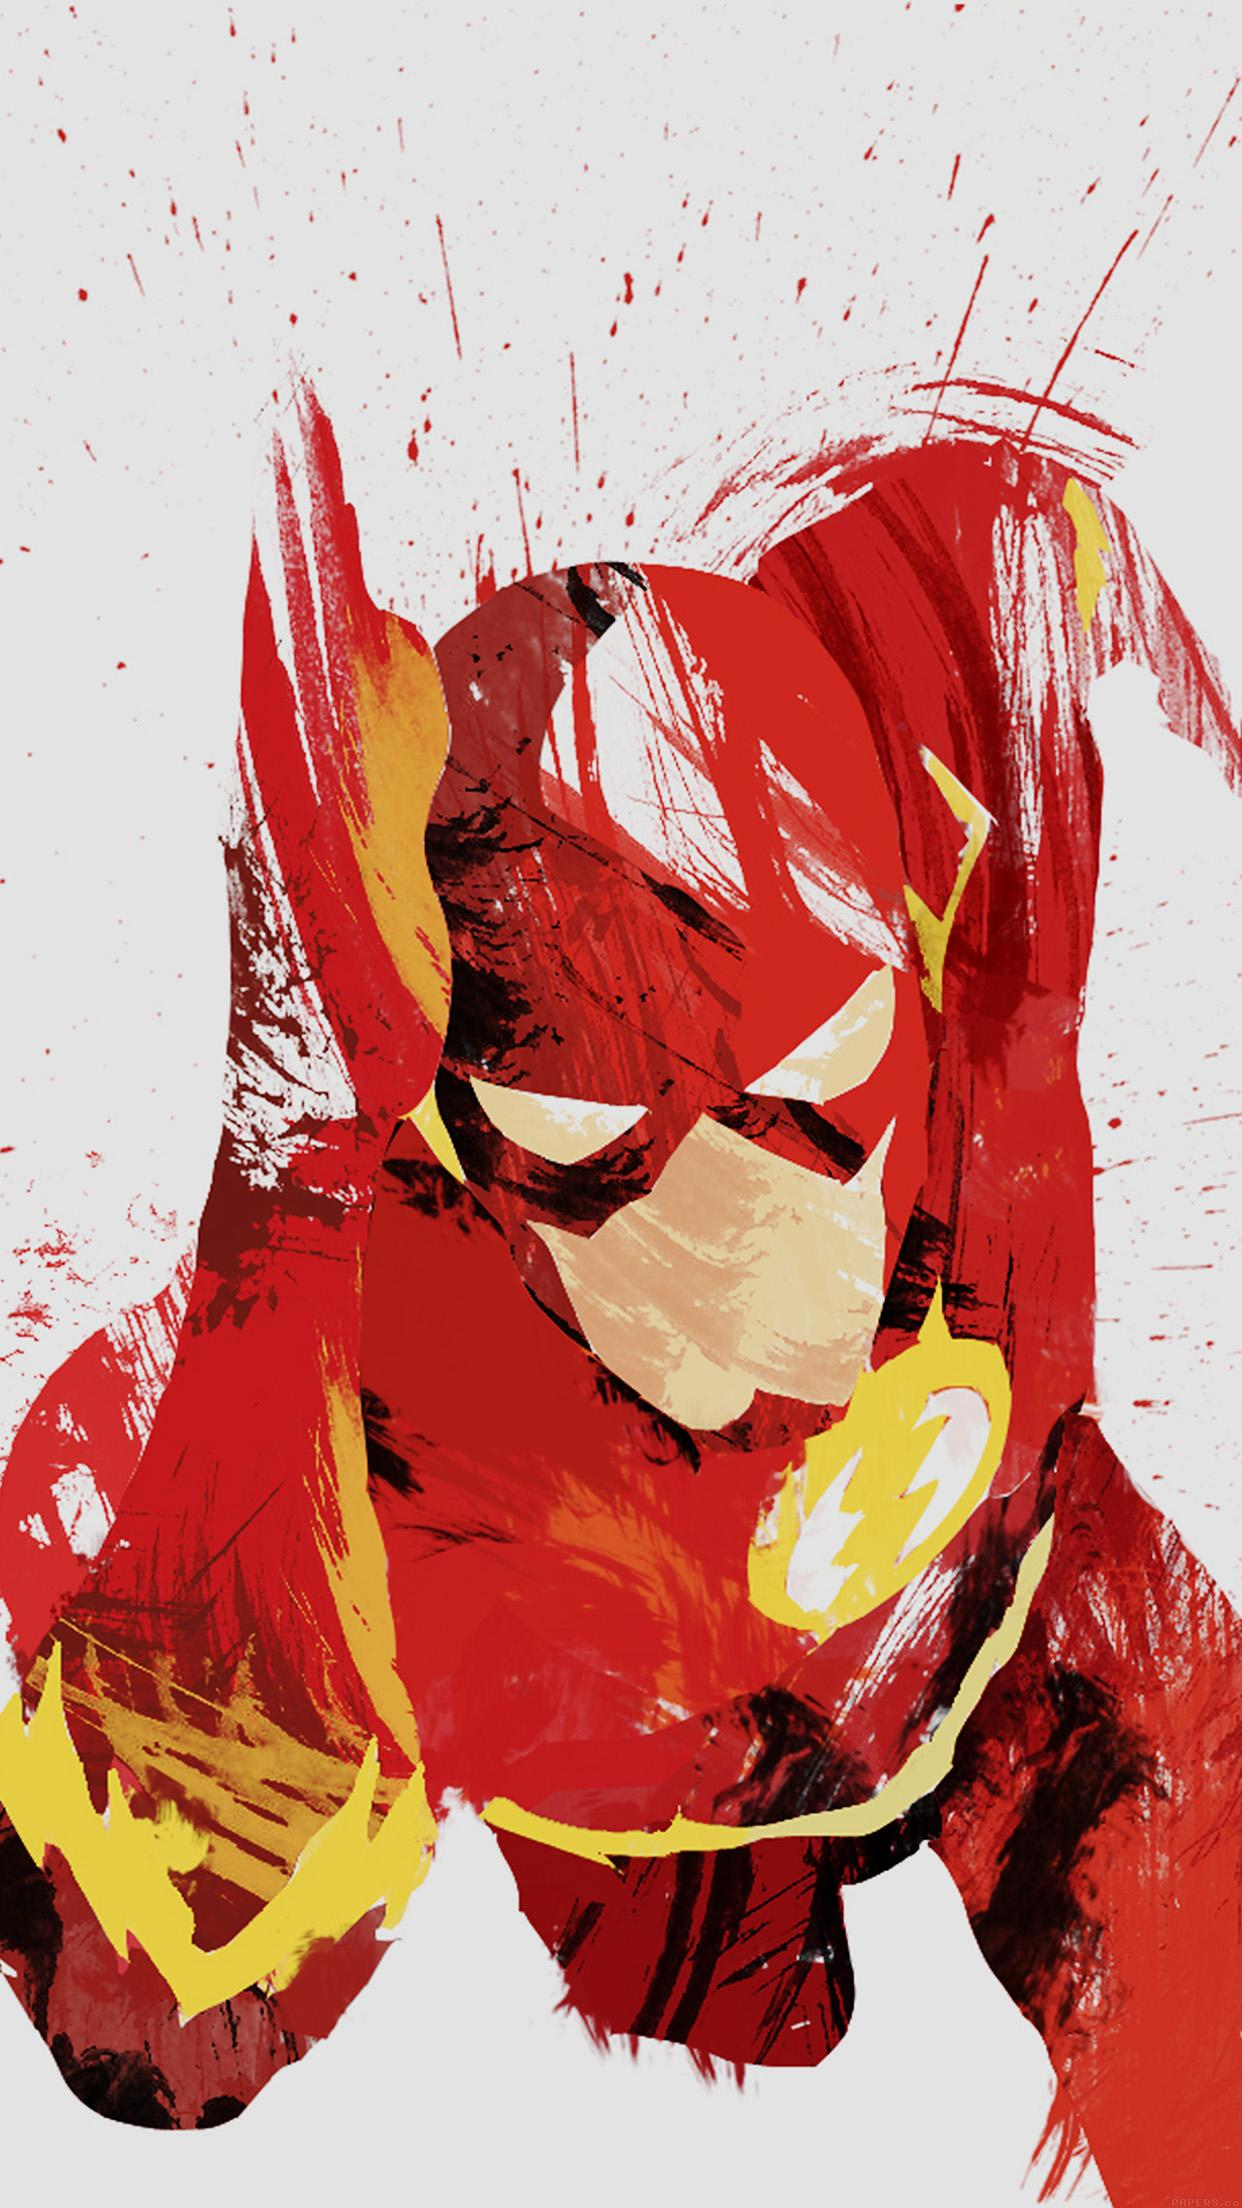 Dc comics flash wallpaper for iphone x 8 7 6 free - Superhero iphone wallpaper hd ...